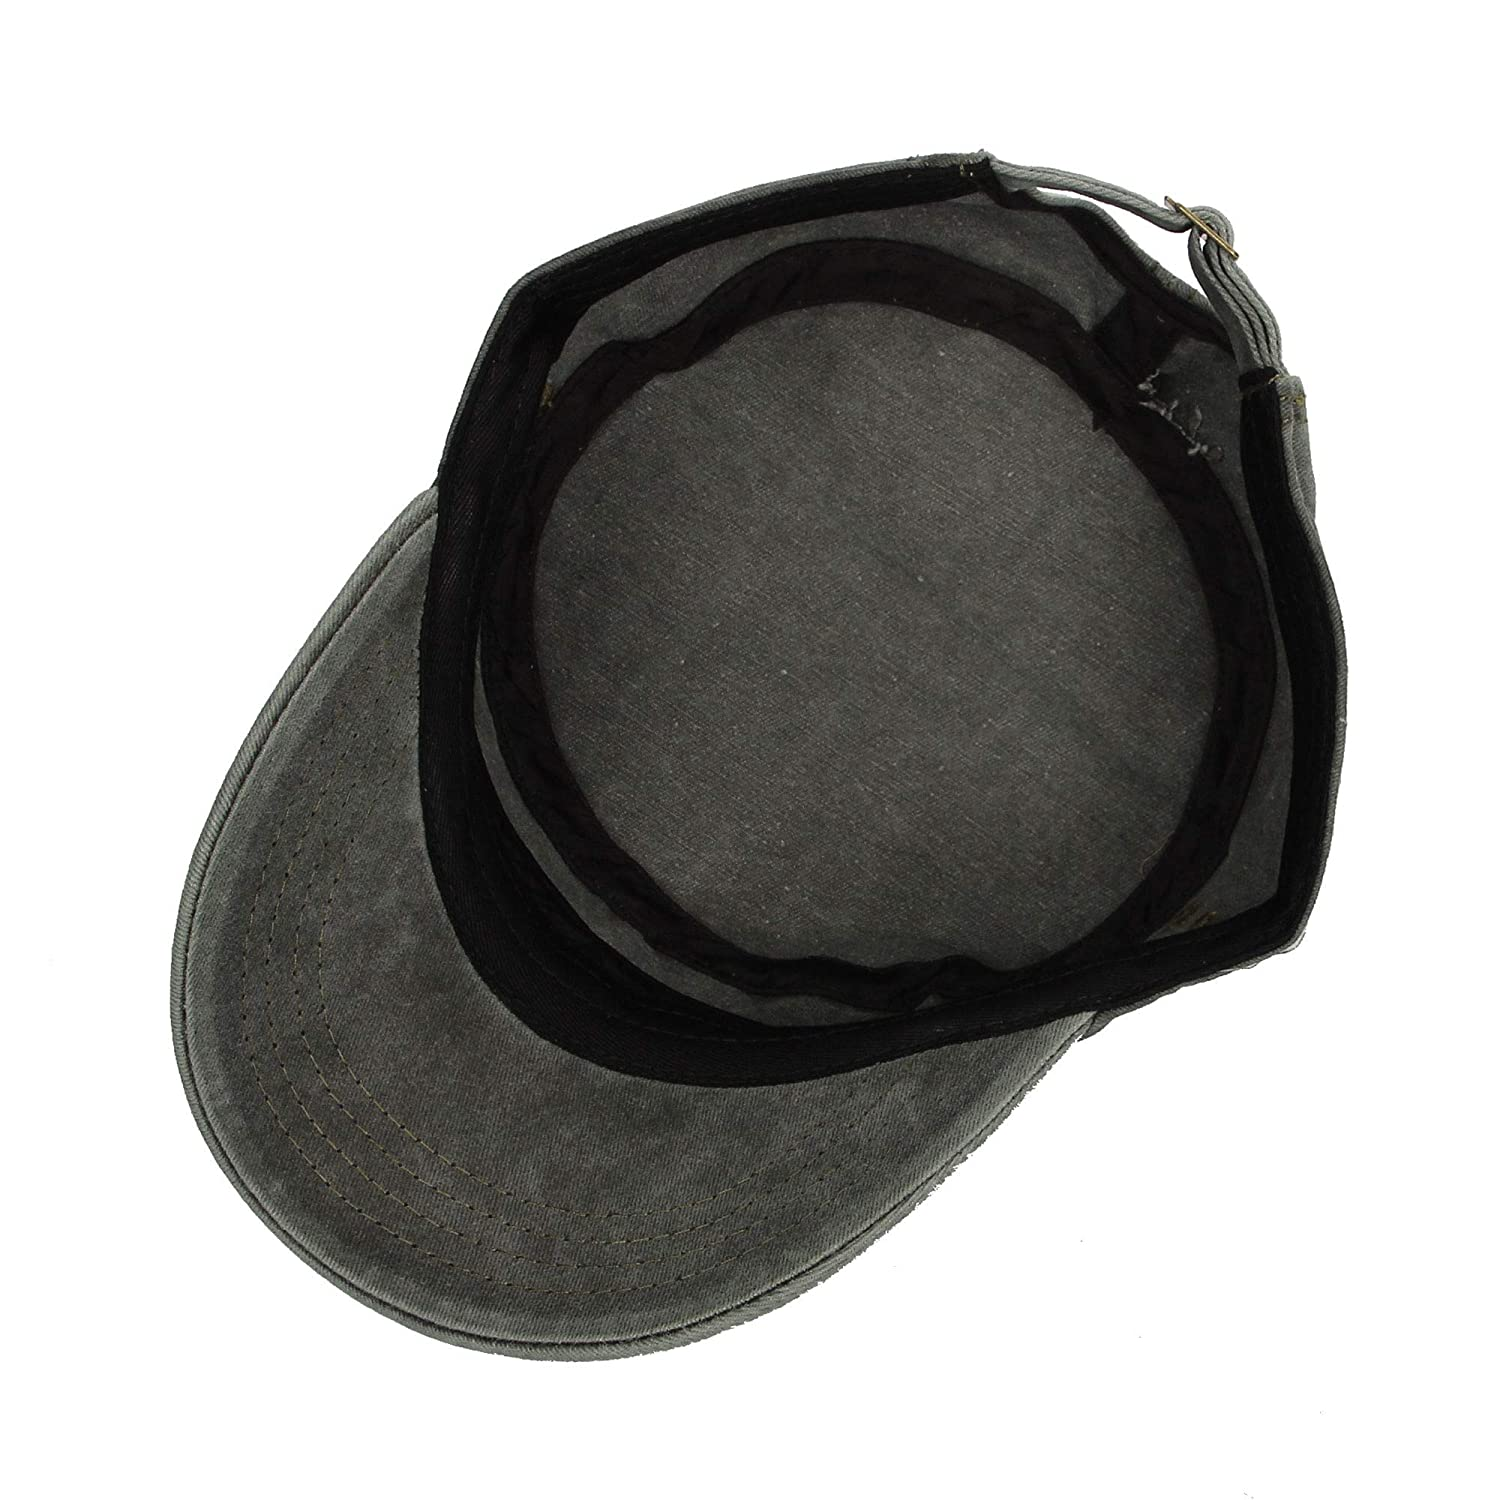 WIM Cappello Militare Cadetto Washed Cotton Cadet cap Vintage Military Army Hat Mens Womens KZ40037